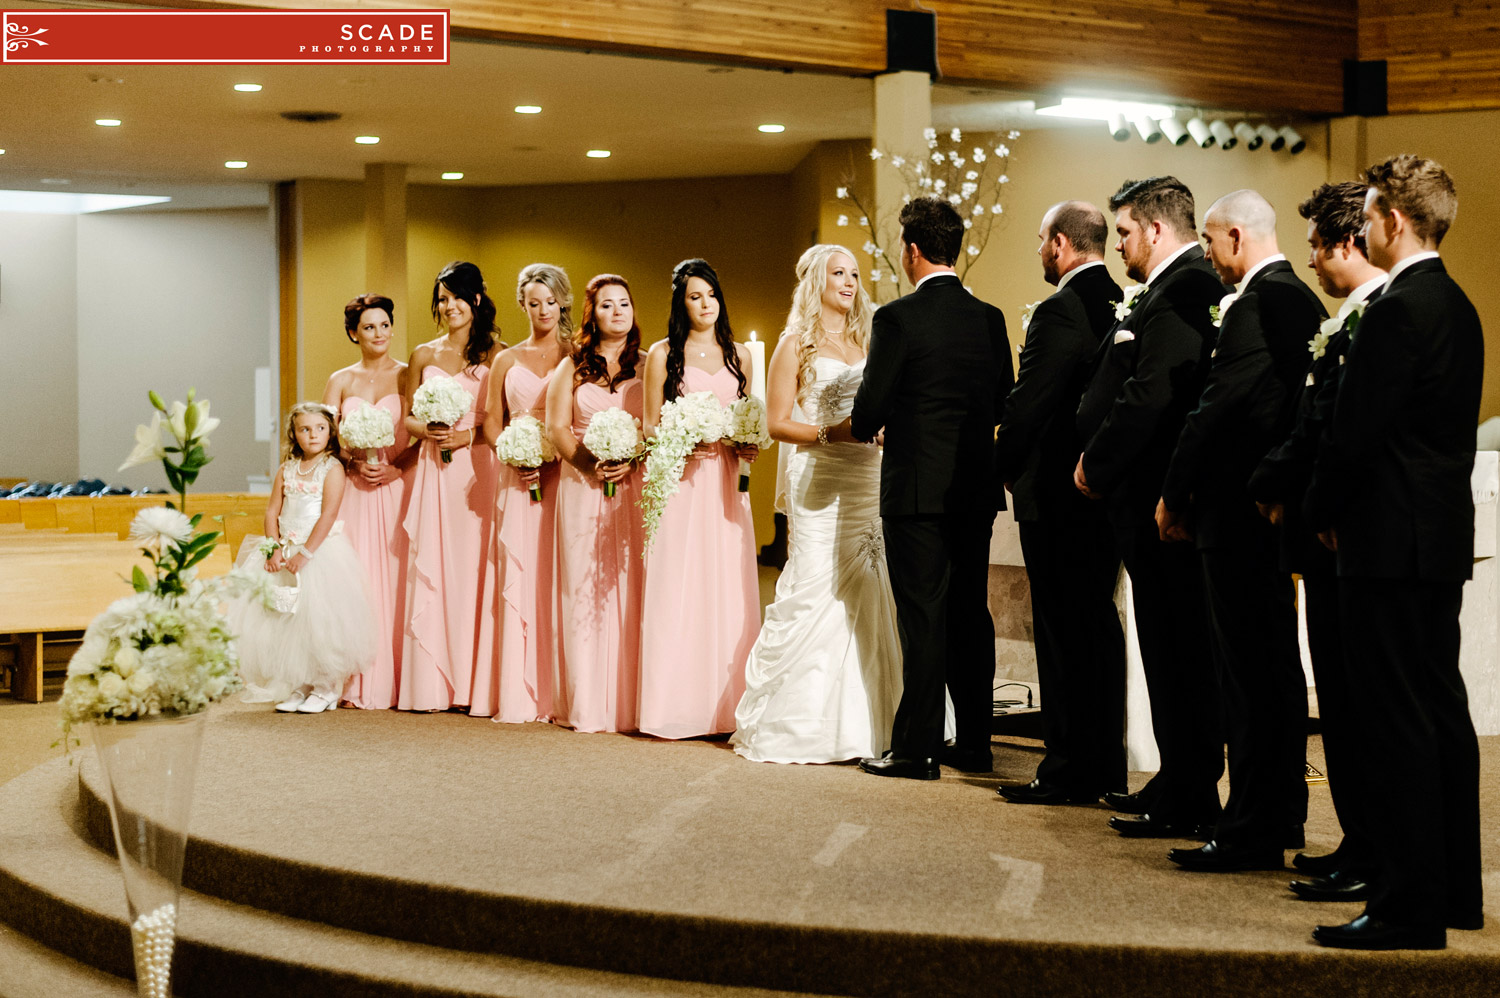 Lamont Wedding Photography - Brittney and Michael - 0012.JPG